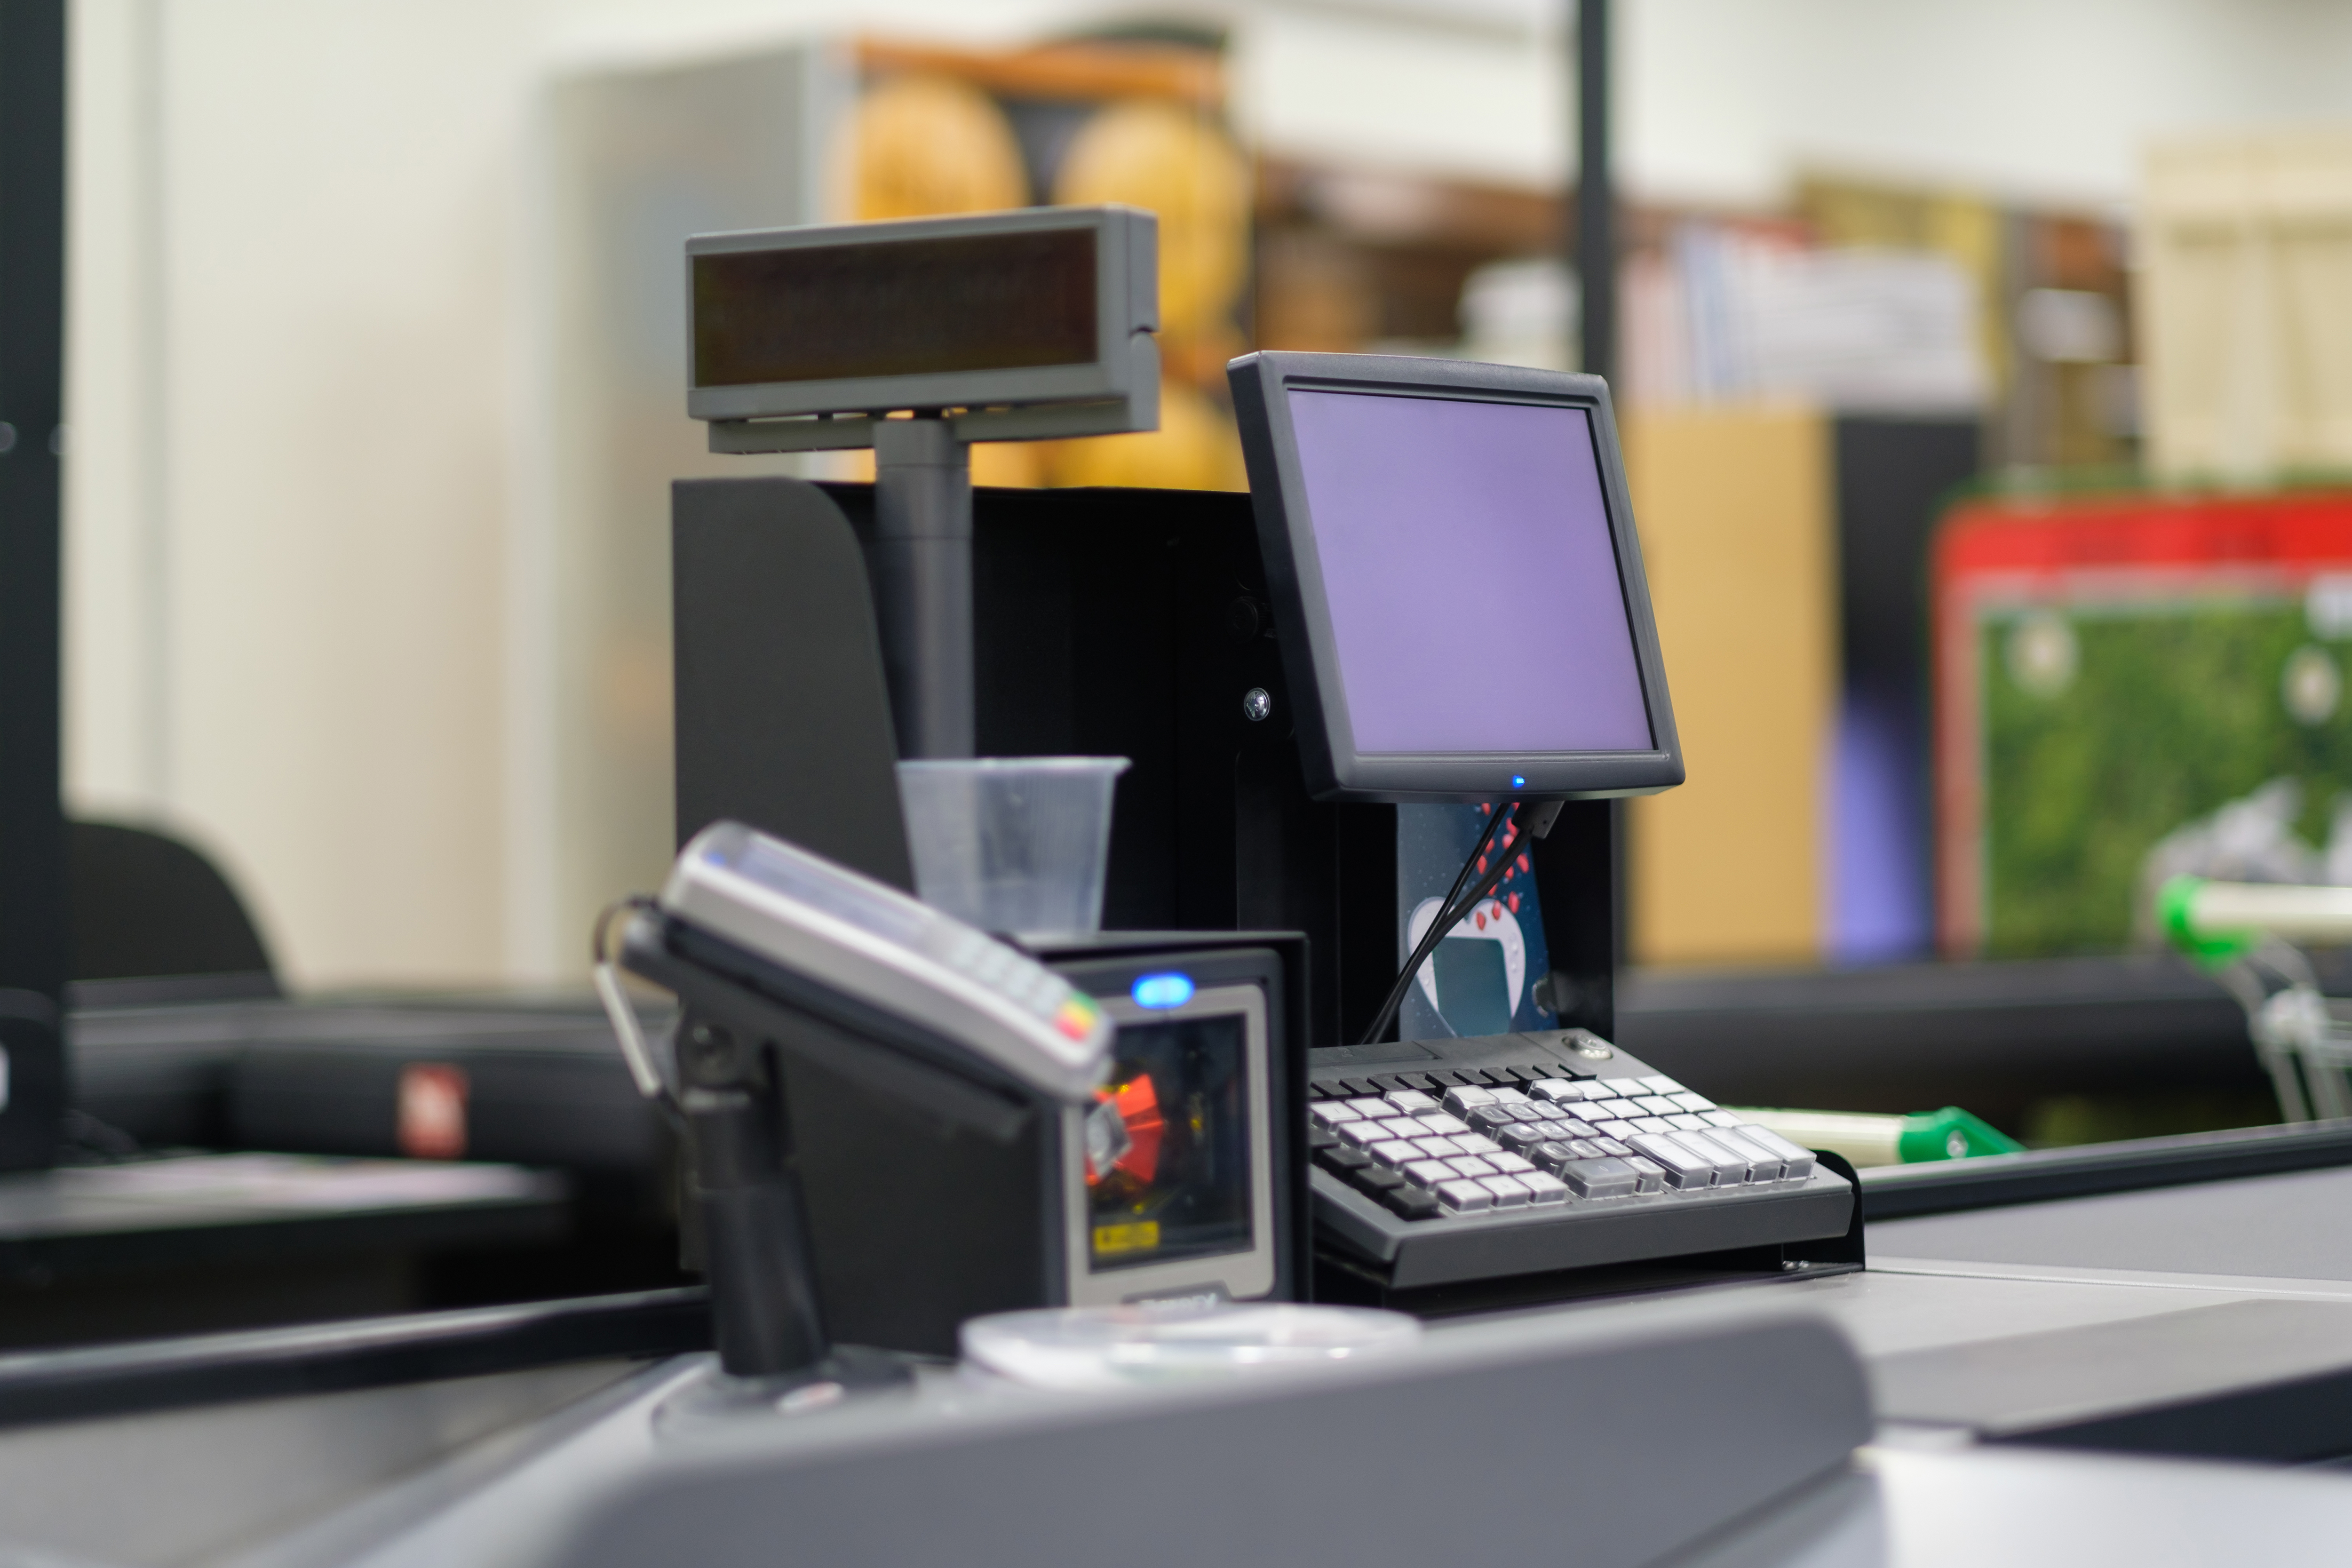 The Best POS Systems of 2018 | Business.com